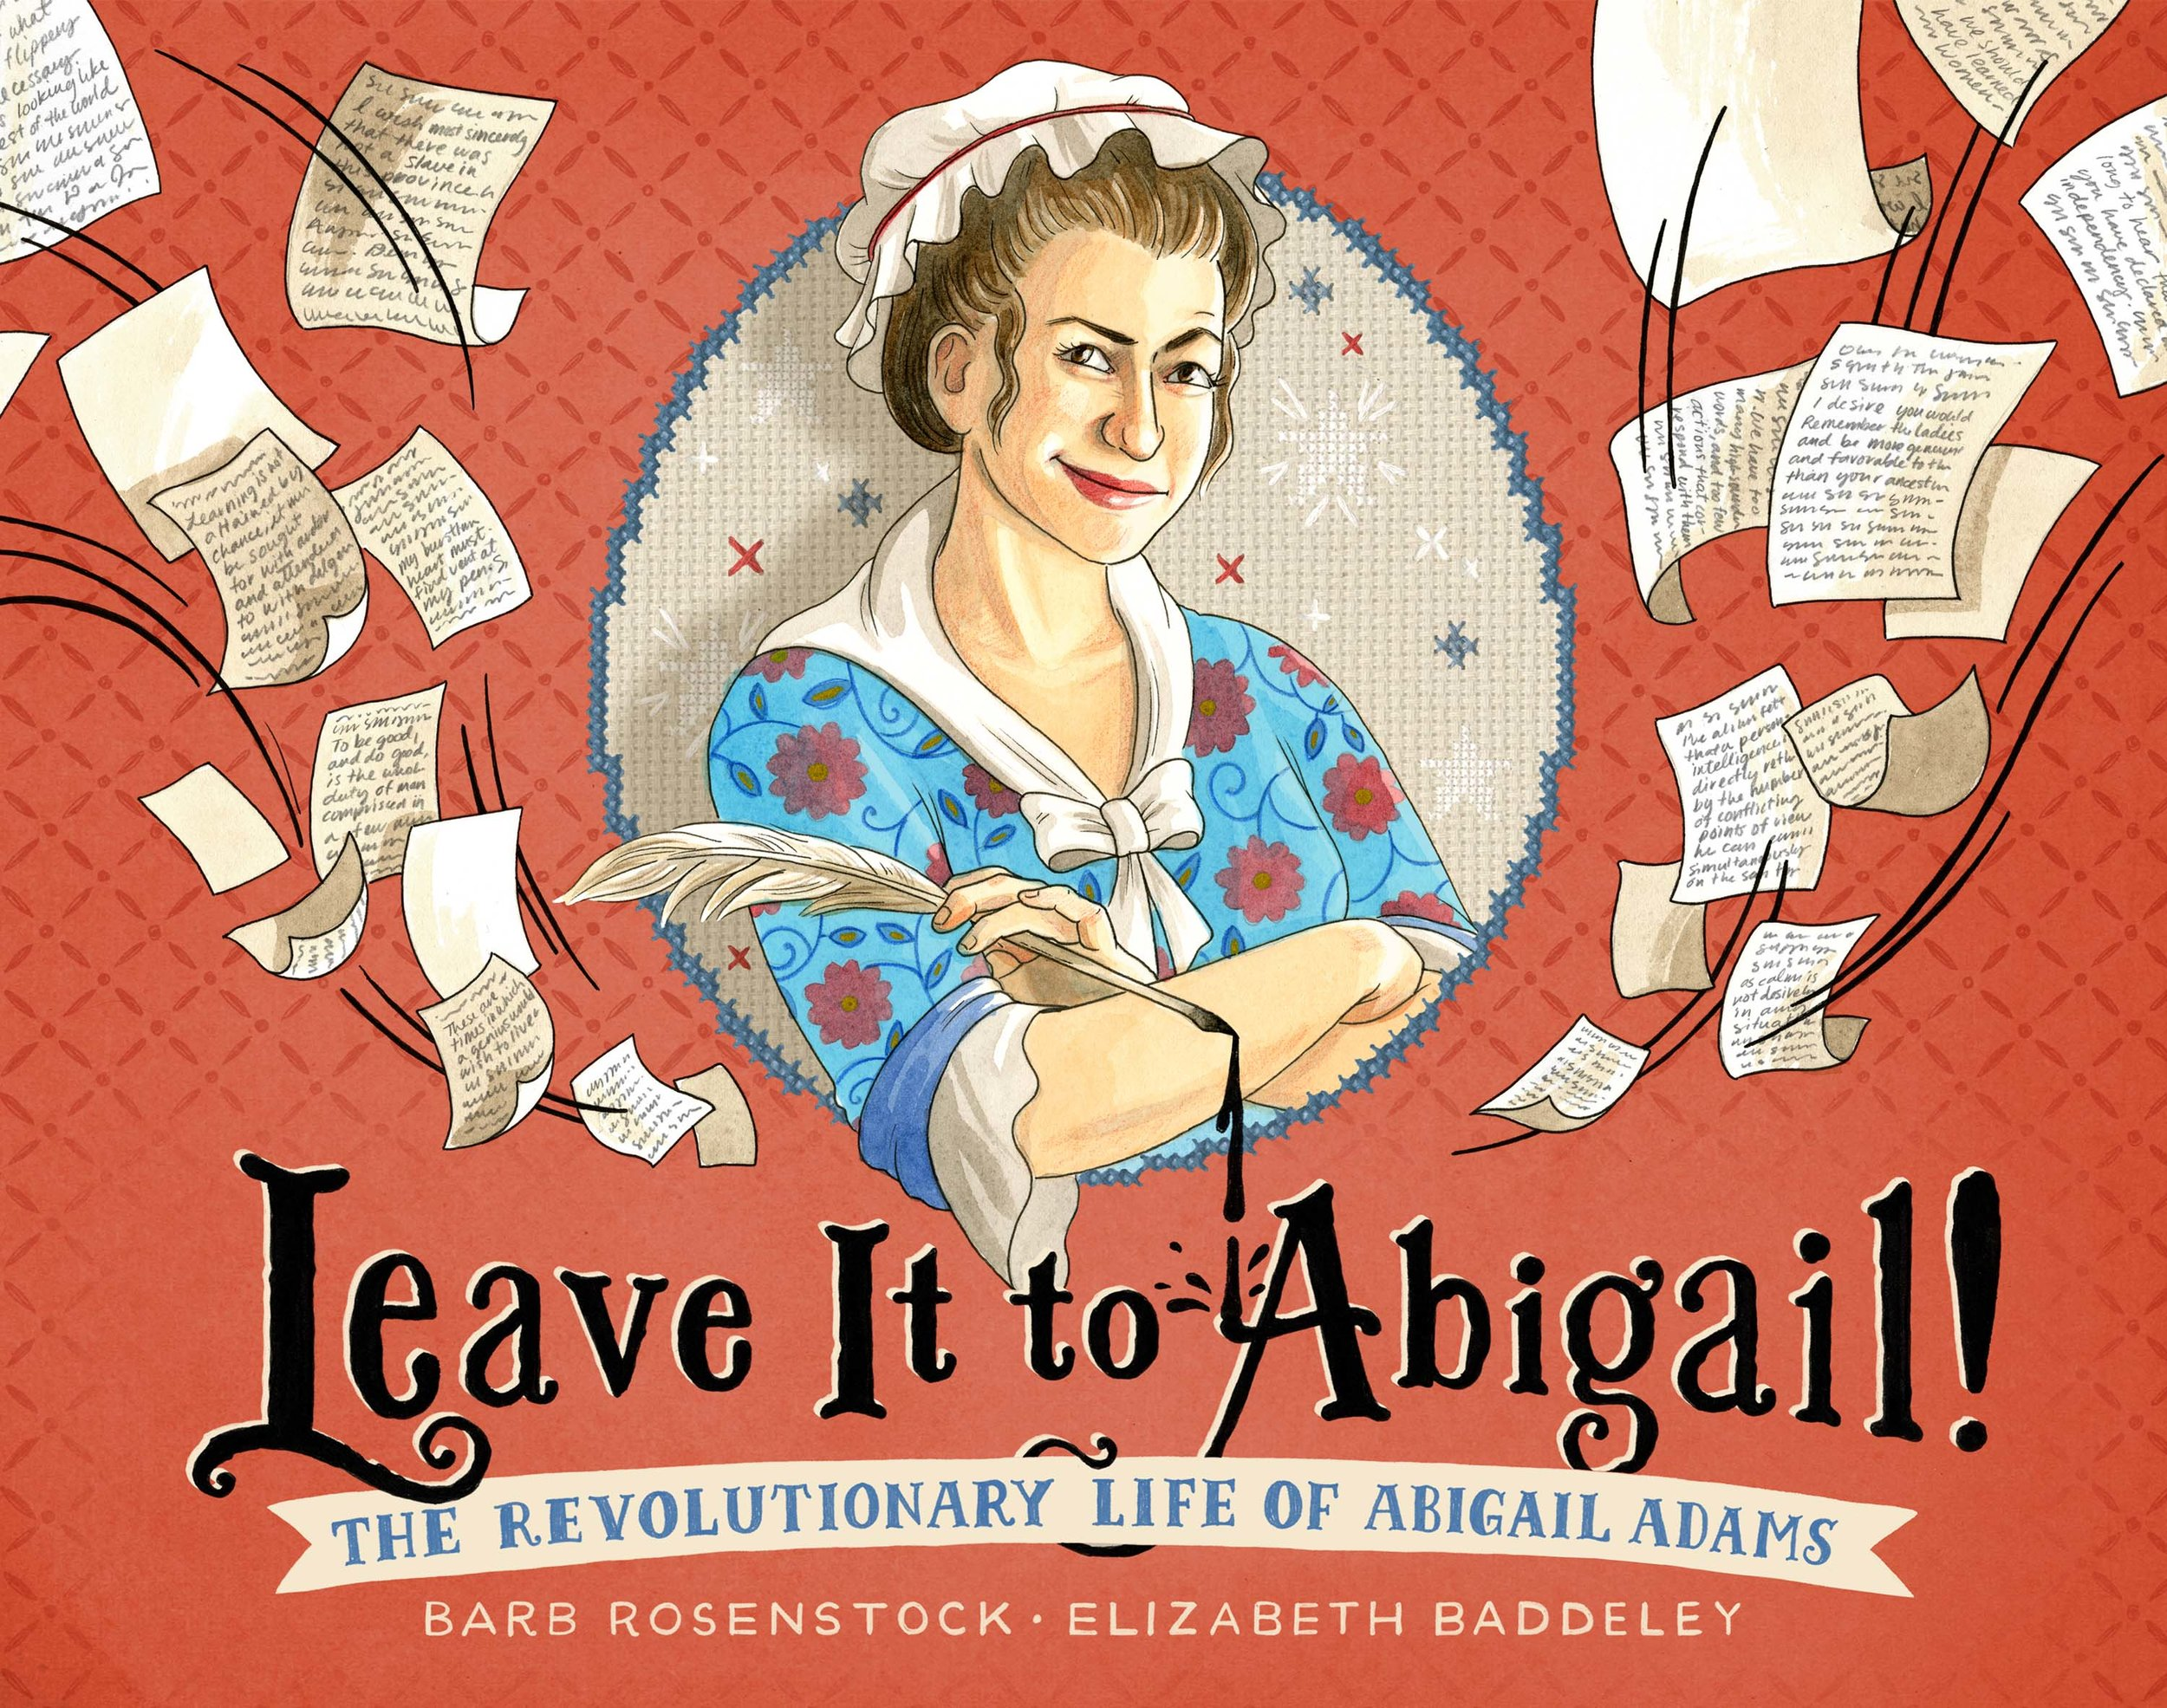 EBaddeley_LeaveItToAbigail.2.jpg